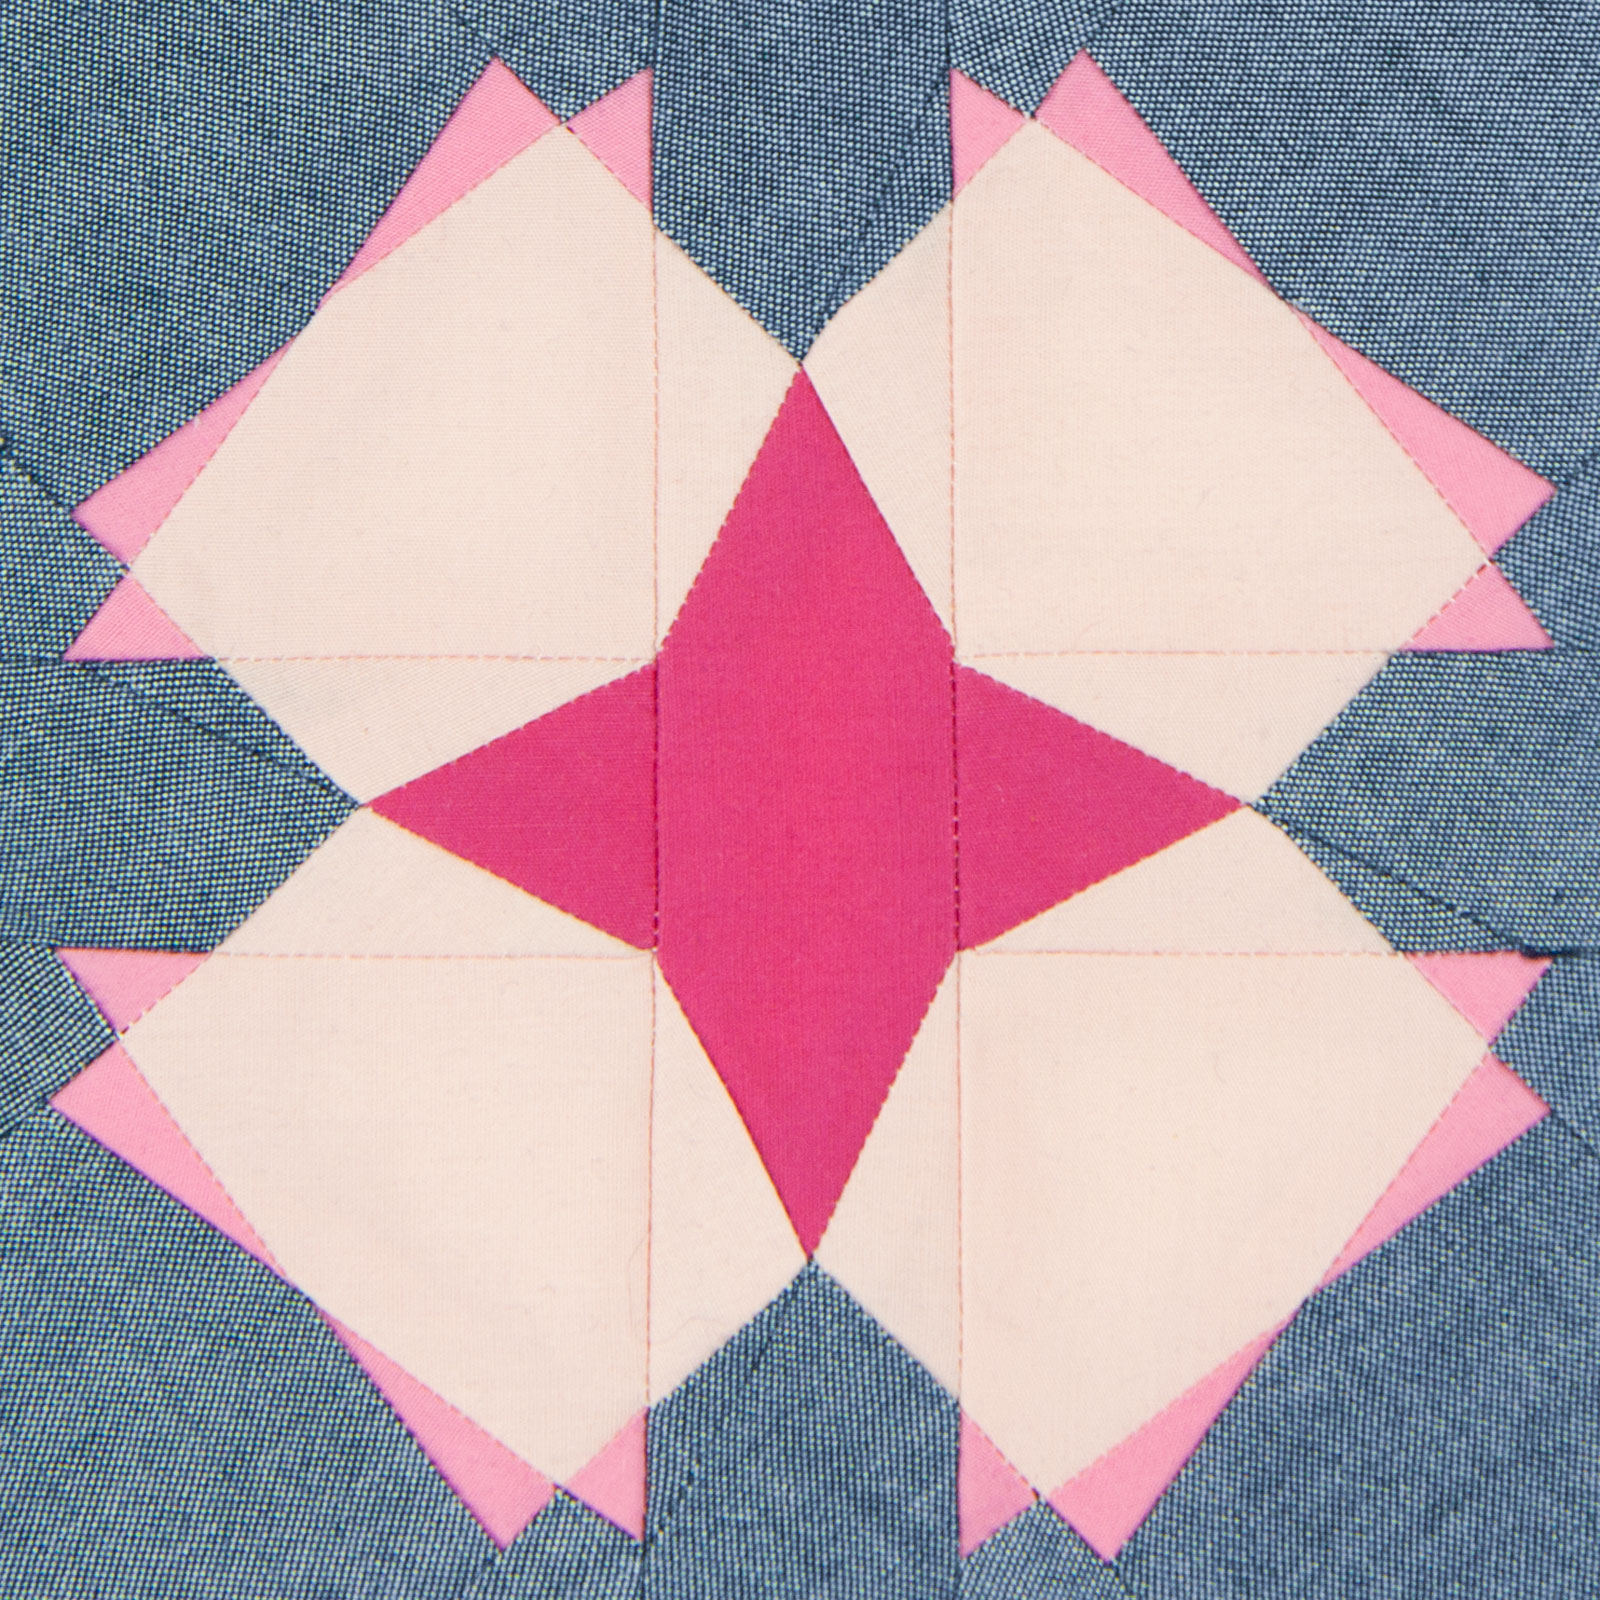 Lodestars quilt block #34: Harriet